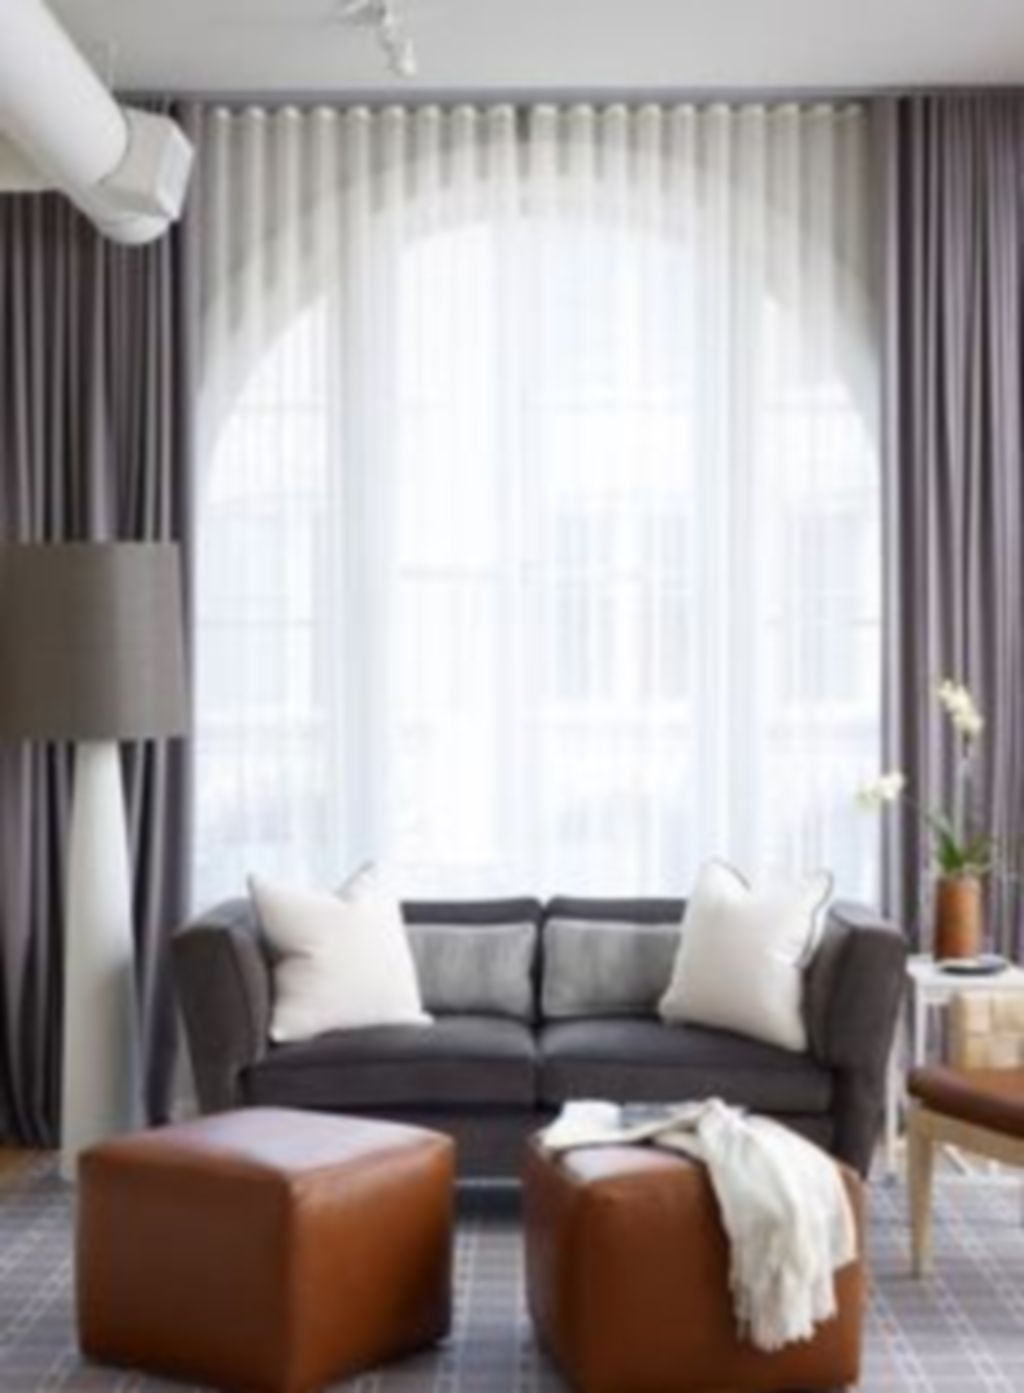 Cool Curtain Ideas For Living Room23